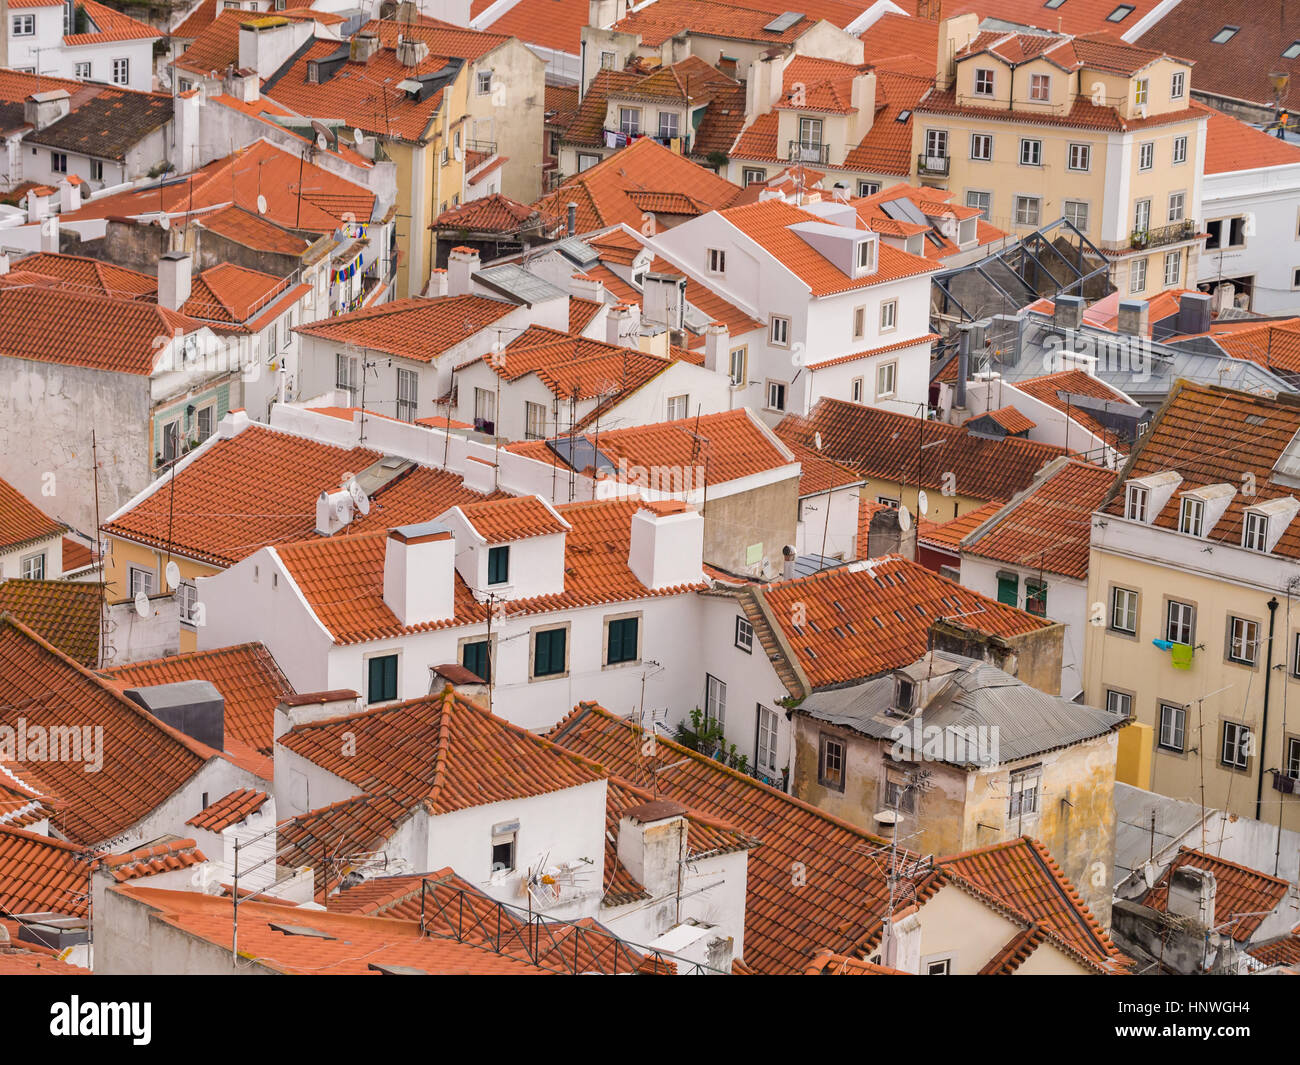 LISBON, PORTUGAL - JANUARY 10, 2017: Cityscape of Lisbon, Portugal, seen from Portas do Sol. - Stock Image